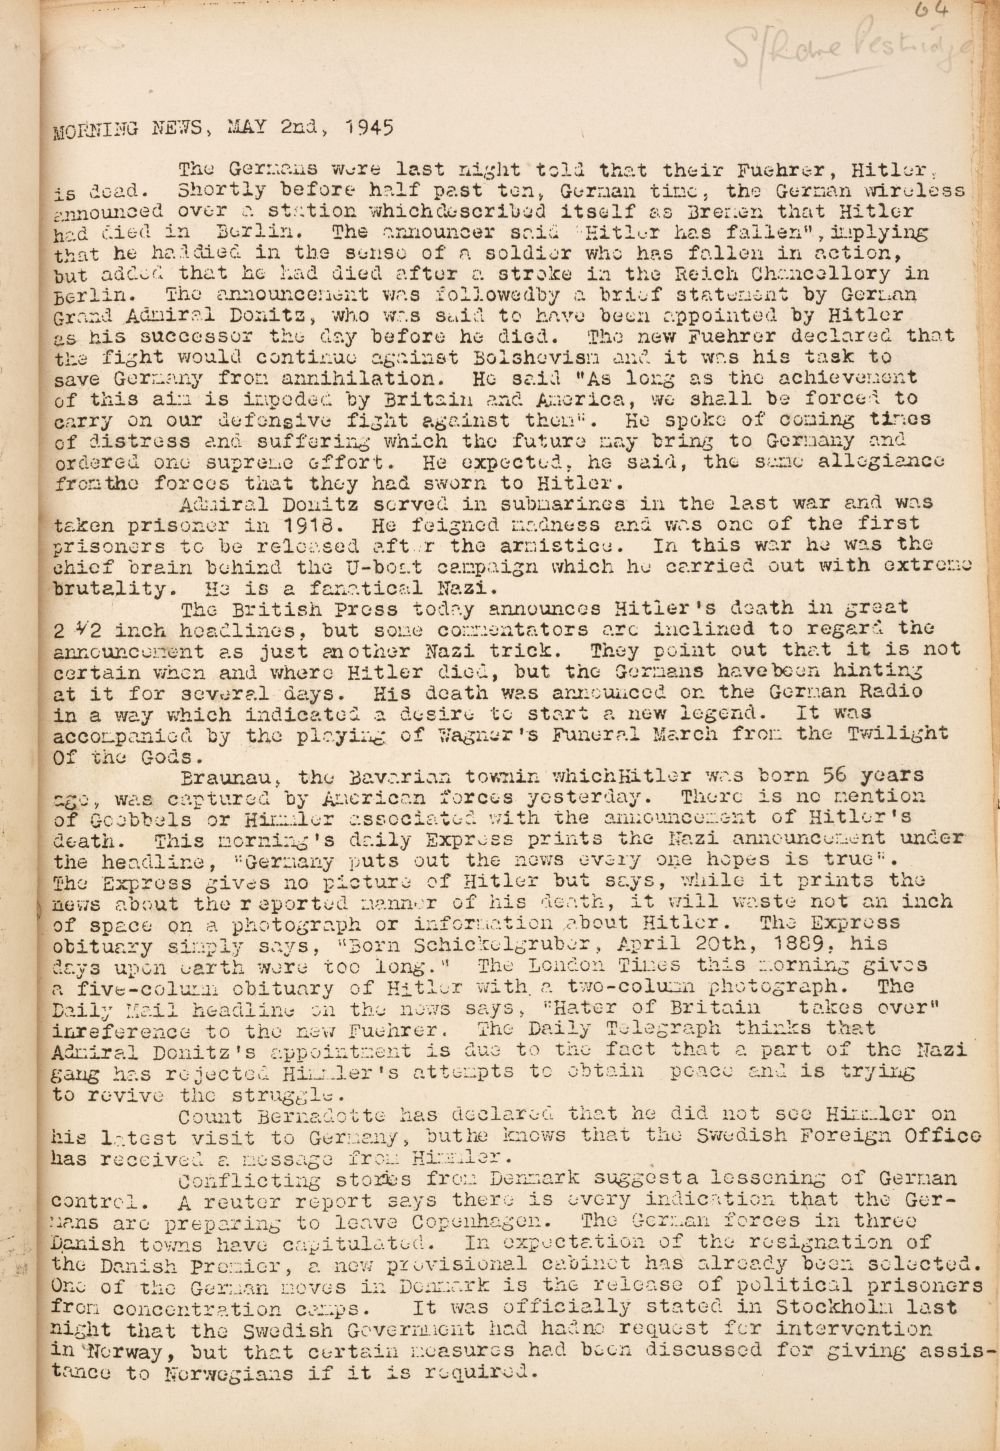 * Stalag III-A. Camp News Service of Stalag III-A at Luckenwalder, 25 April to 19 May 1945